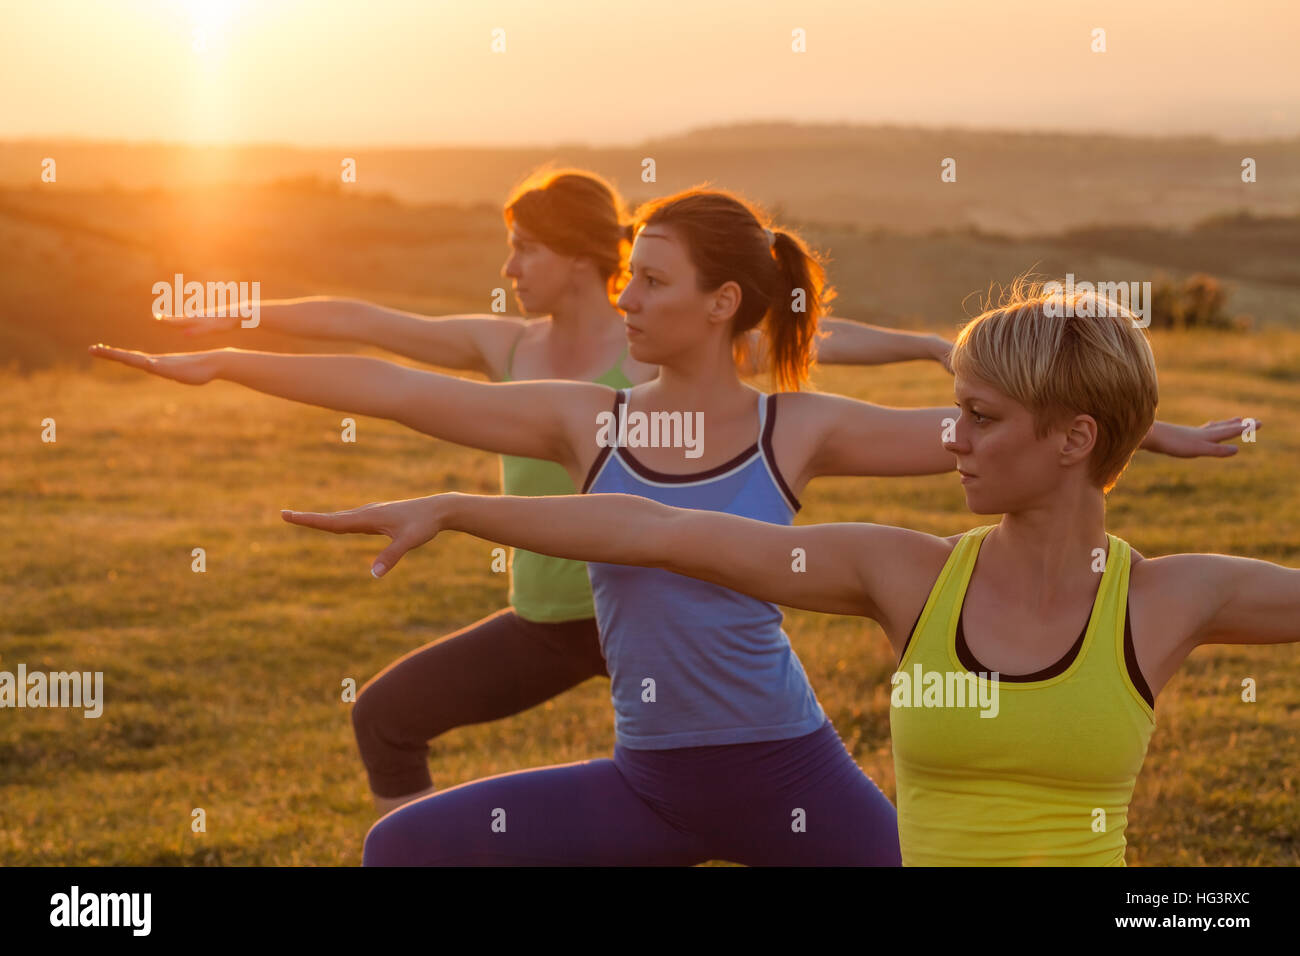 Three girls are practicing yoga in sunset. Warrior position. - Stock Image